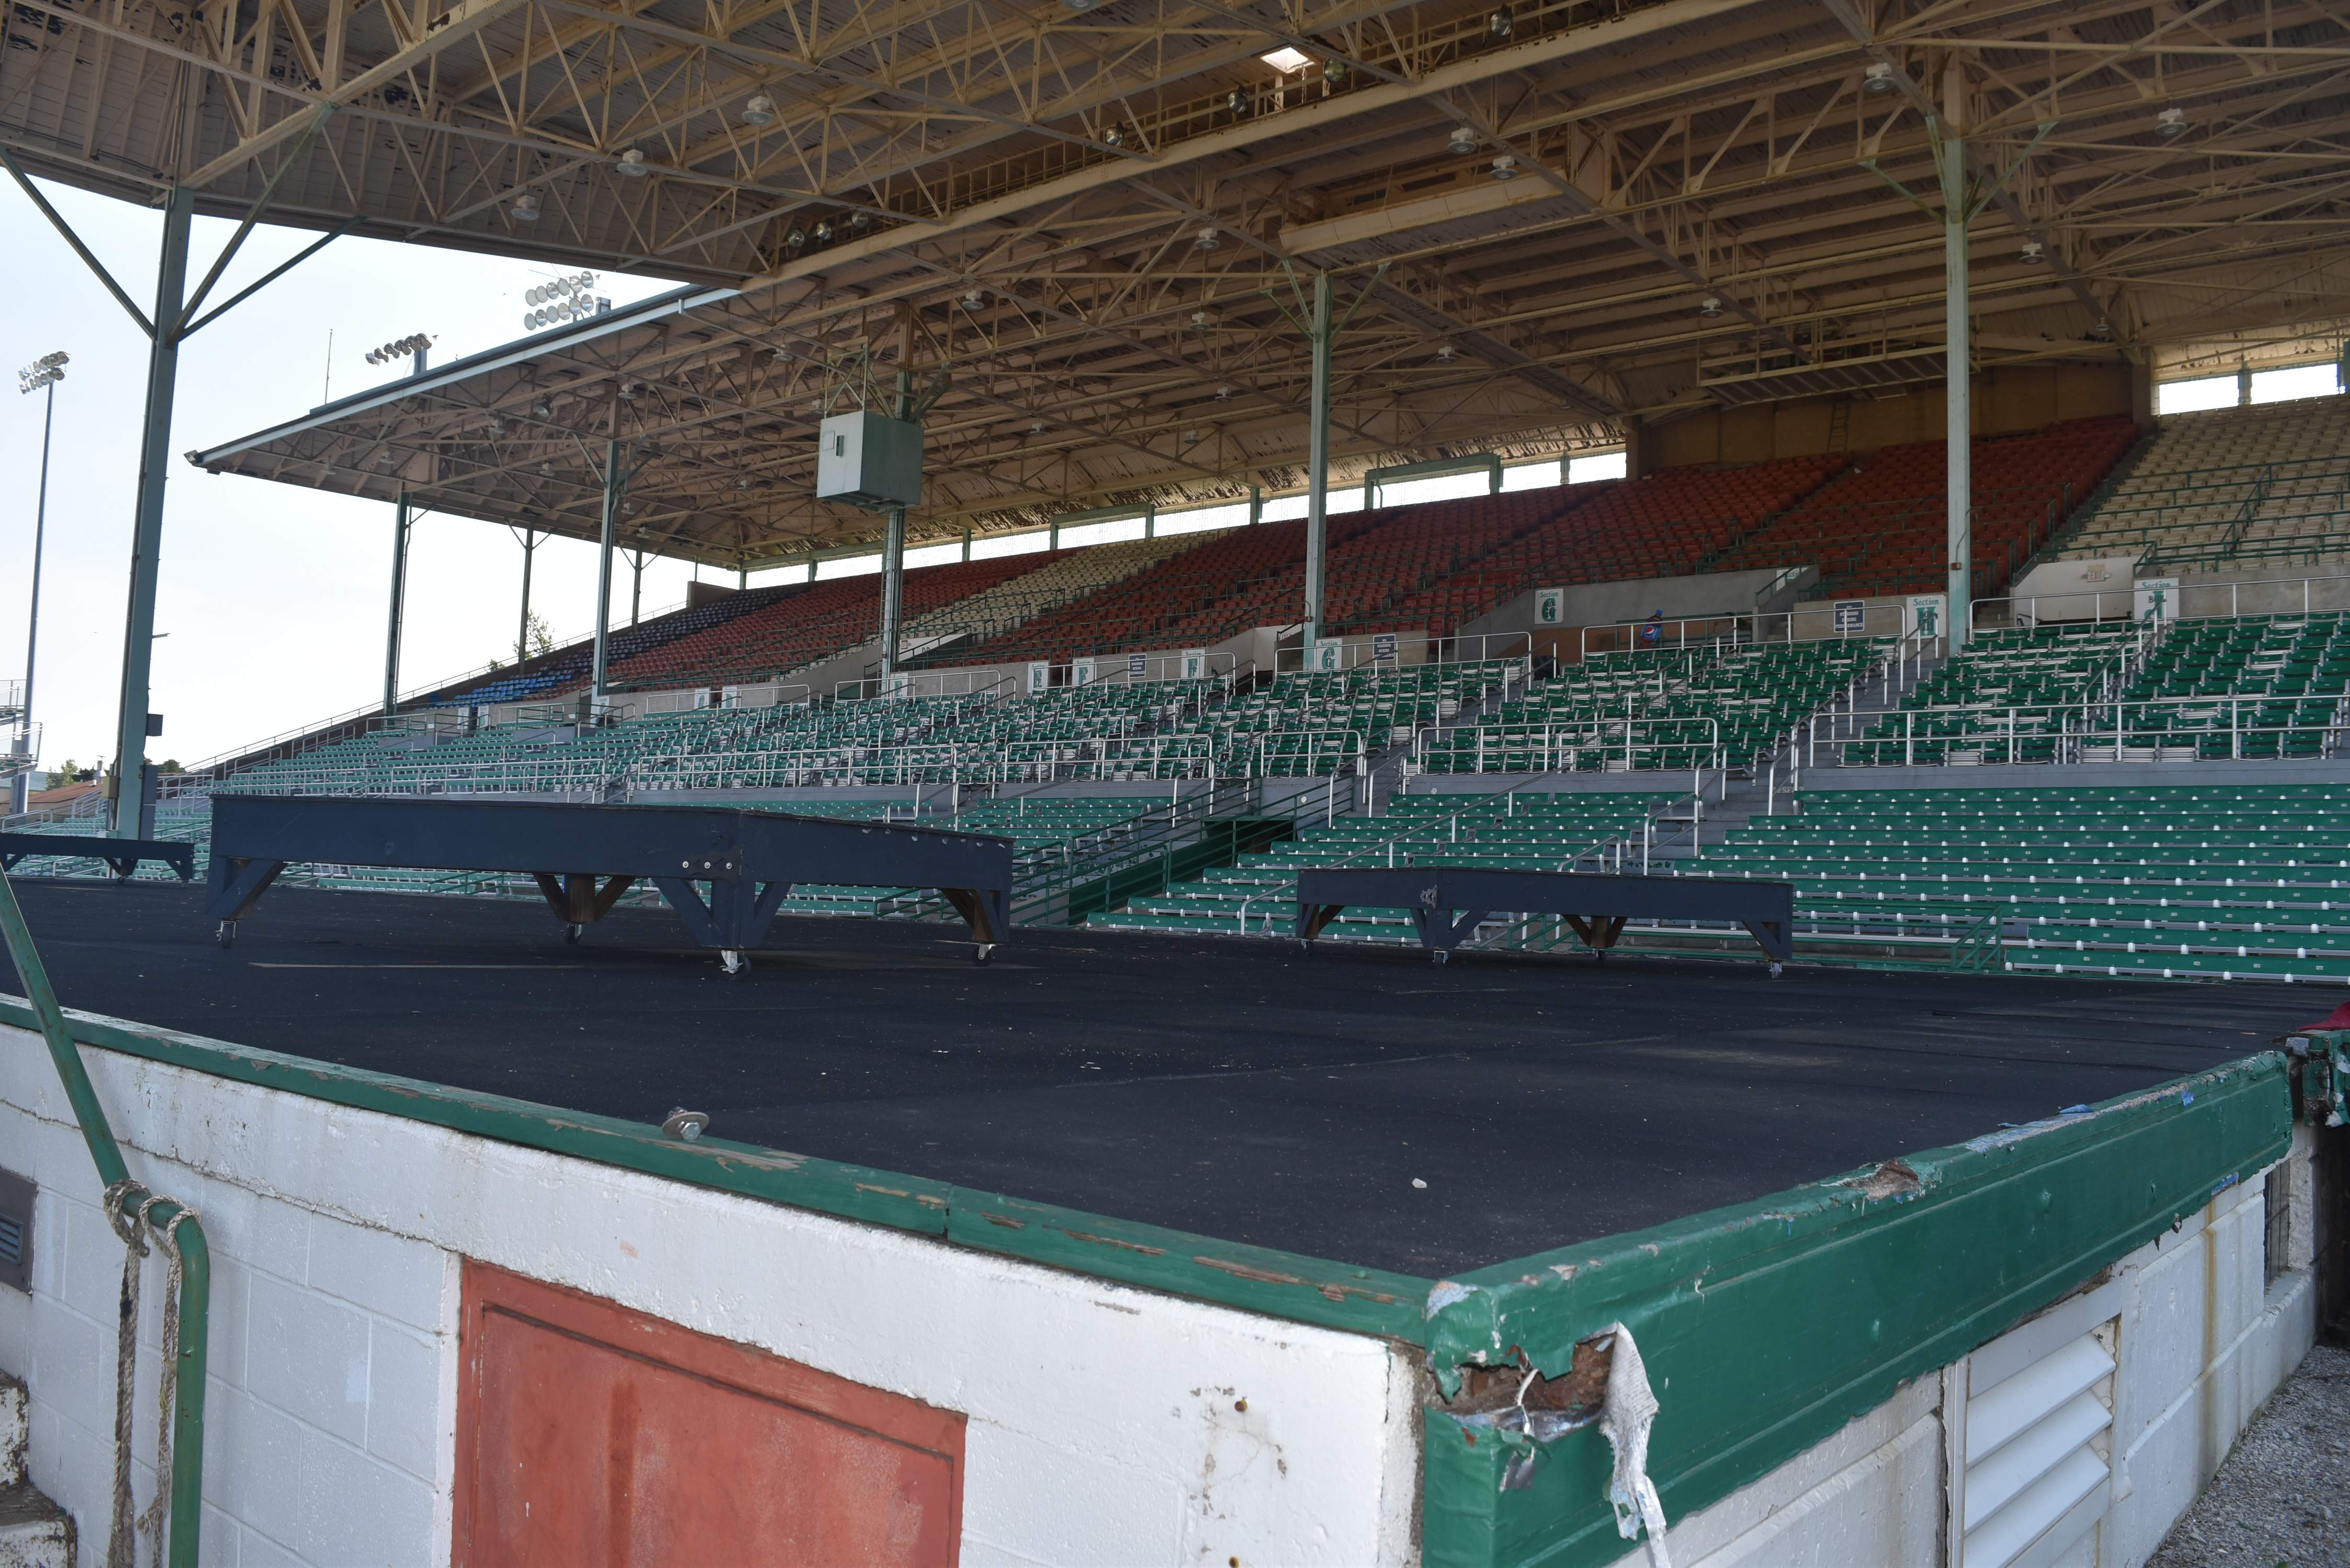 The Du Quoin Fair Grandstand was rushed to completion in 1945, after the original wooden bleachers burned. 'I'll put our fairgrounds up against any in the United States,' Mayor Guy Alongi said while still noting a shortcoming. 'Here the stage is right on the grandstand. In Springfield the stage is on the other side of the track.'